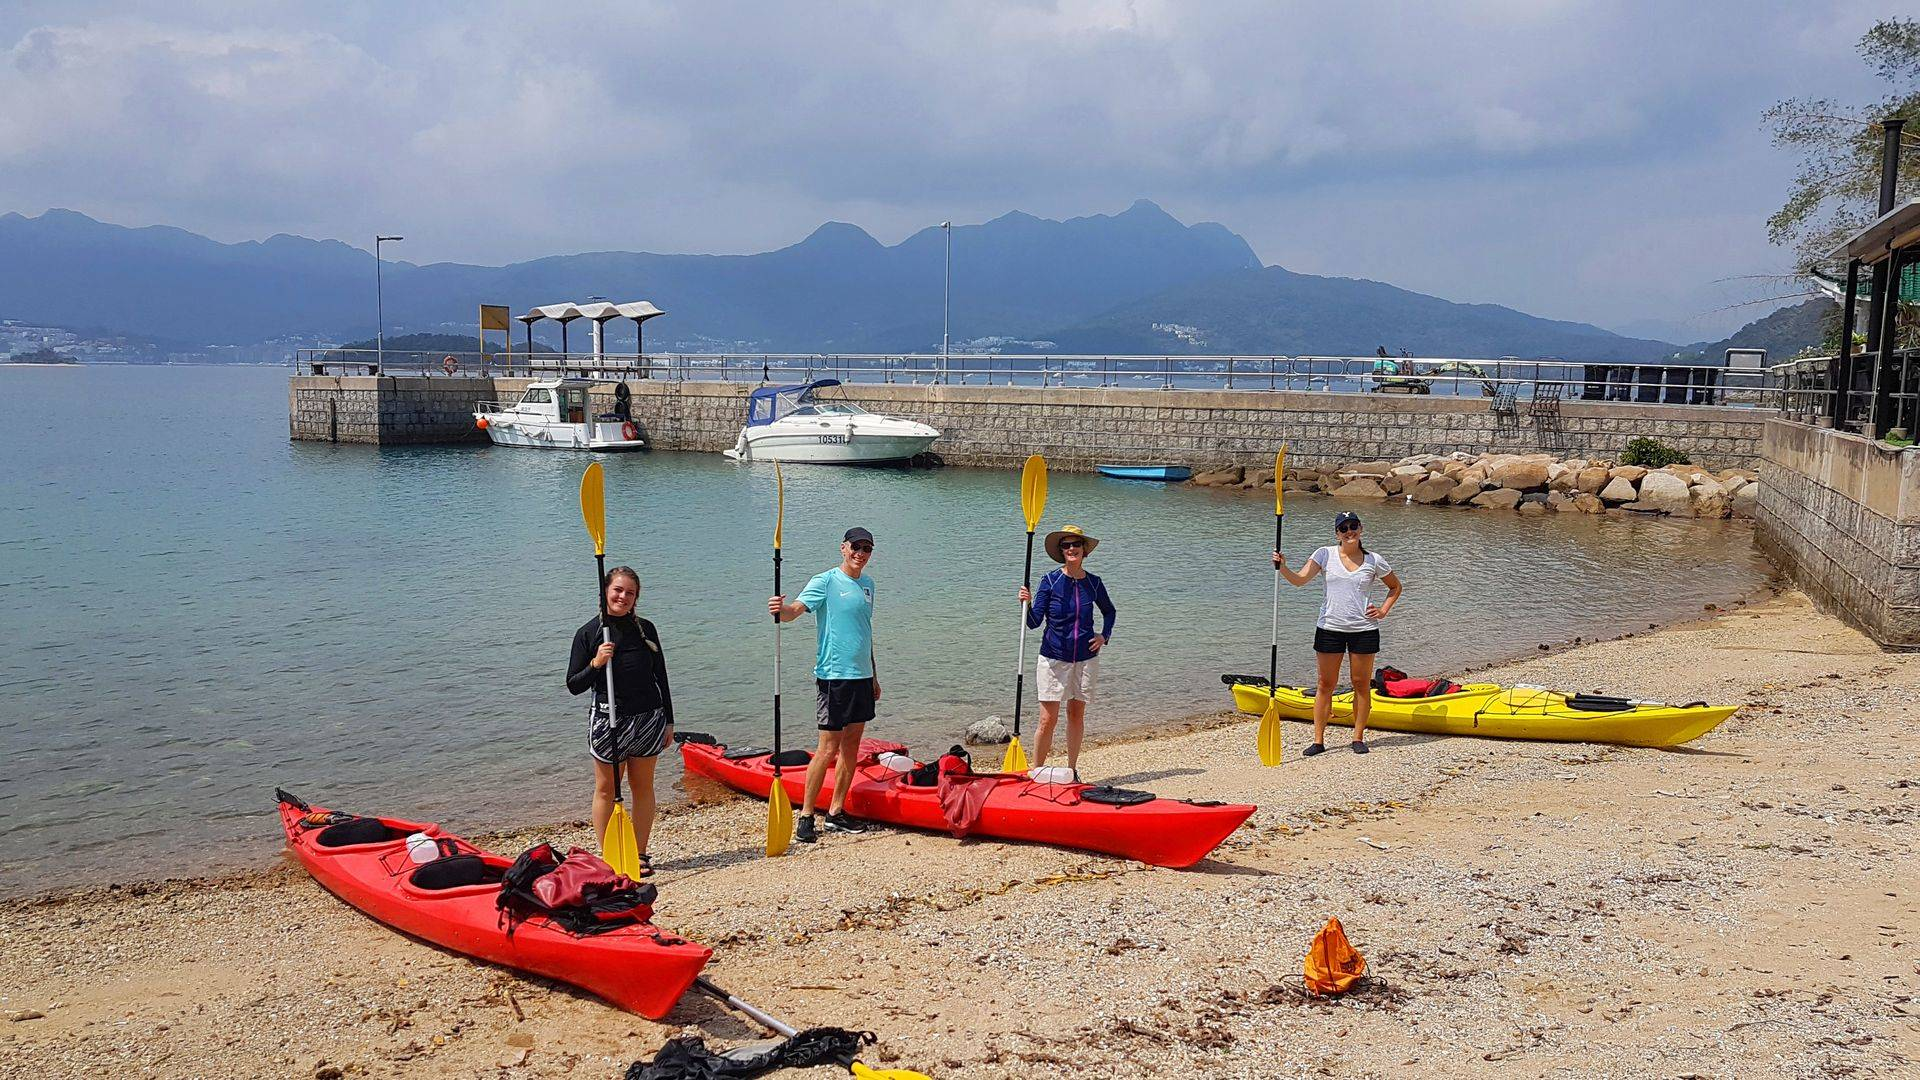 28 Feb 2019 Sea Kayak Hong Kong Sharp Island